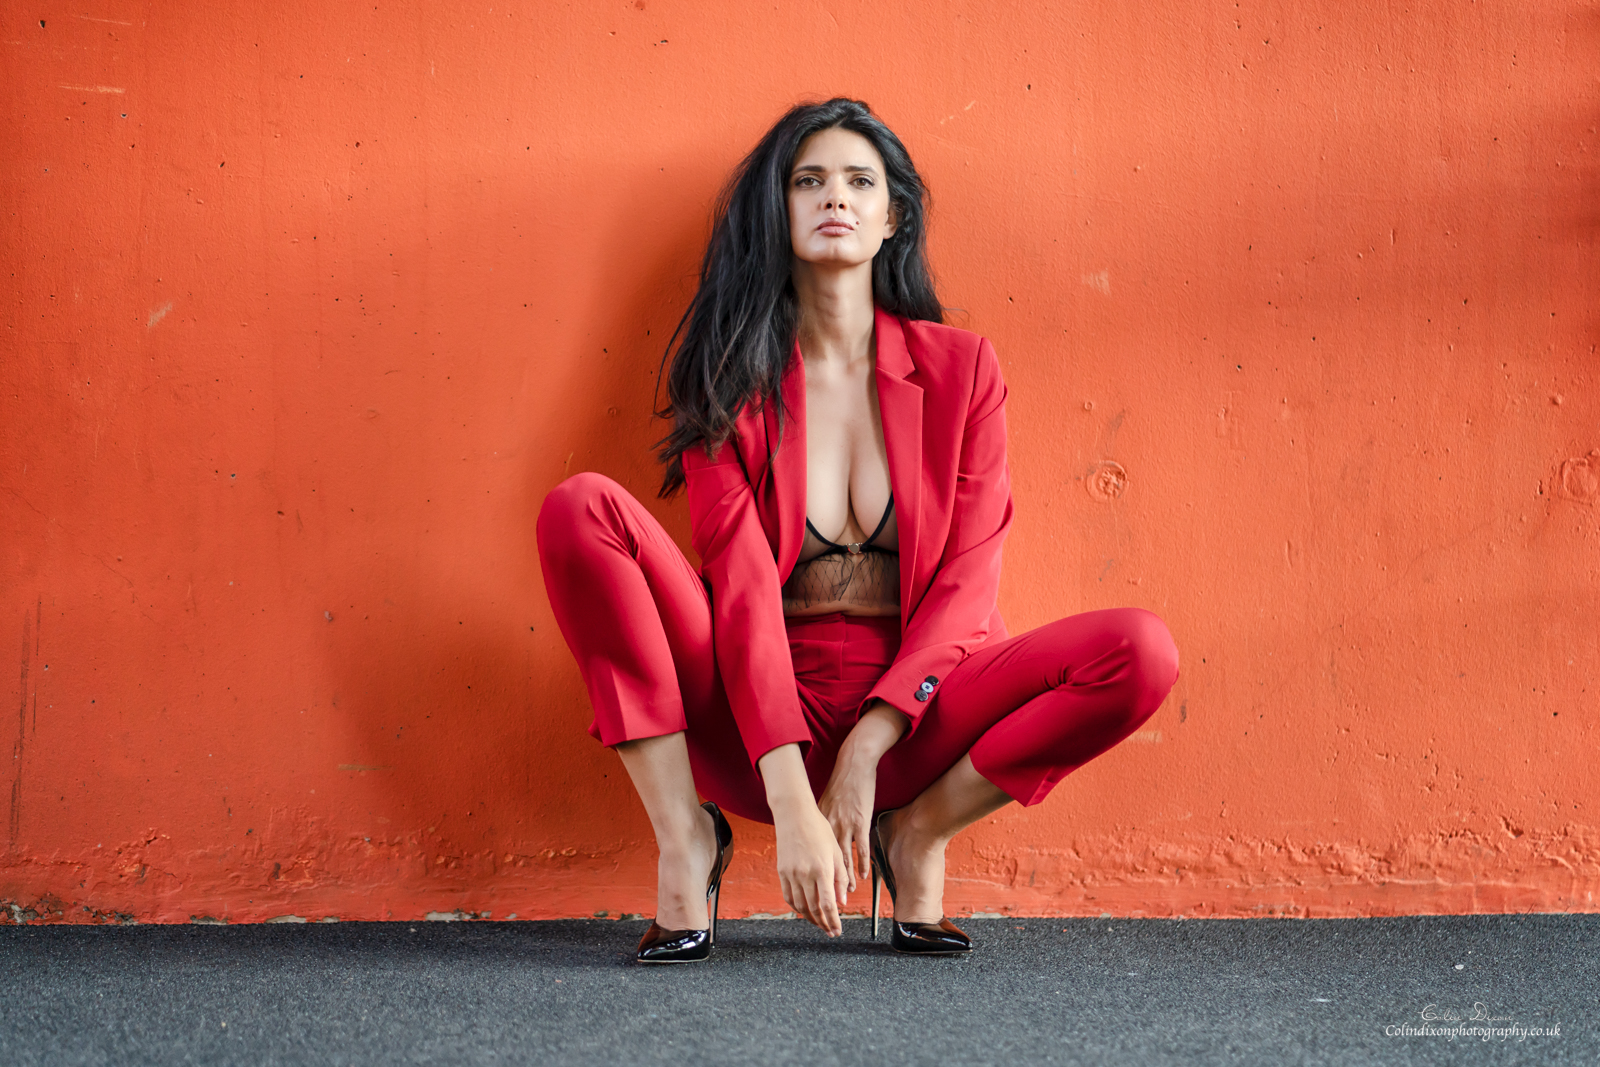 Zoi Morgan Rotterdam-Red Suit 4